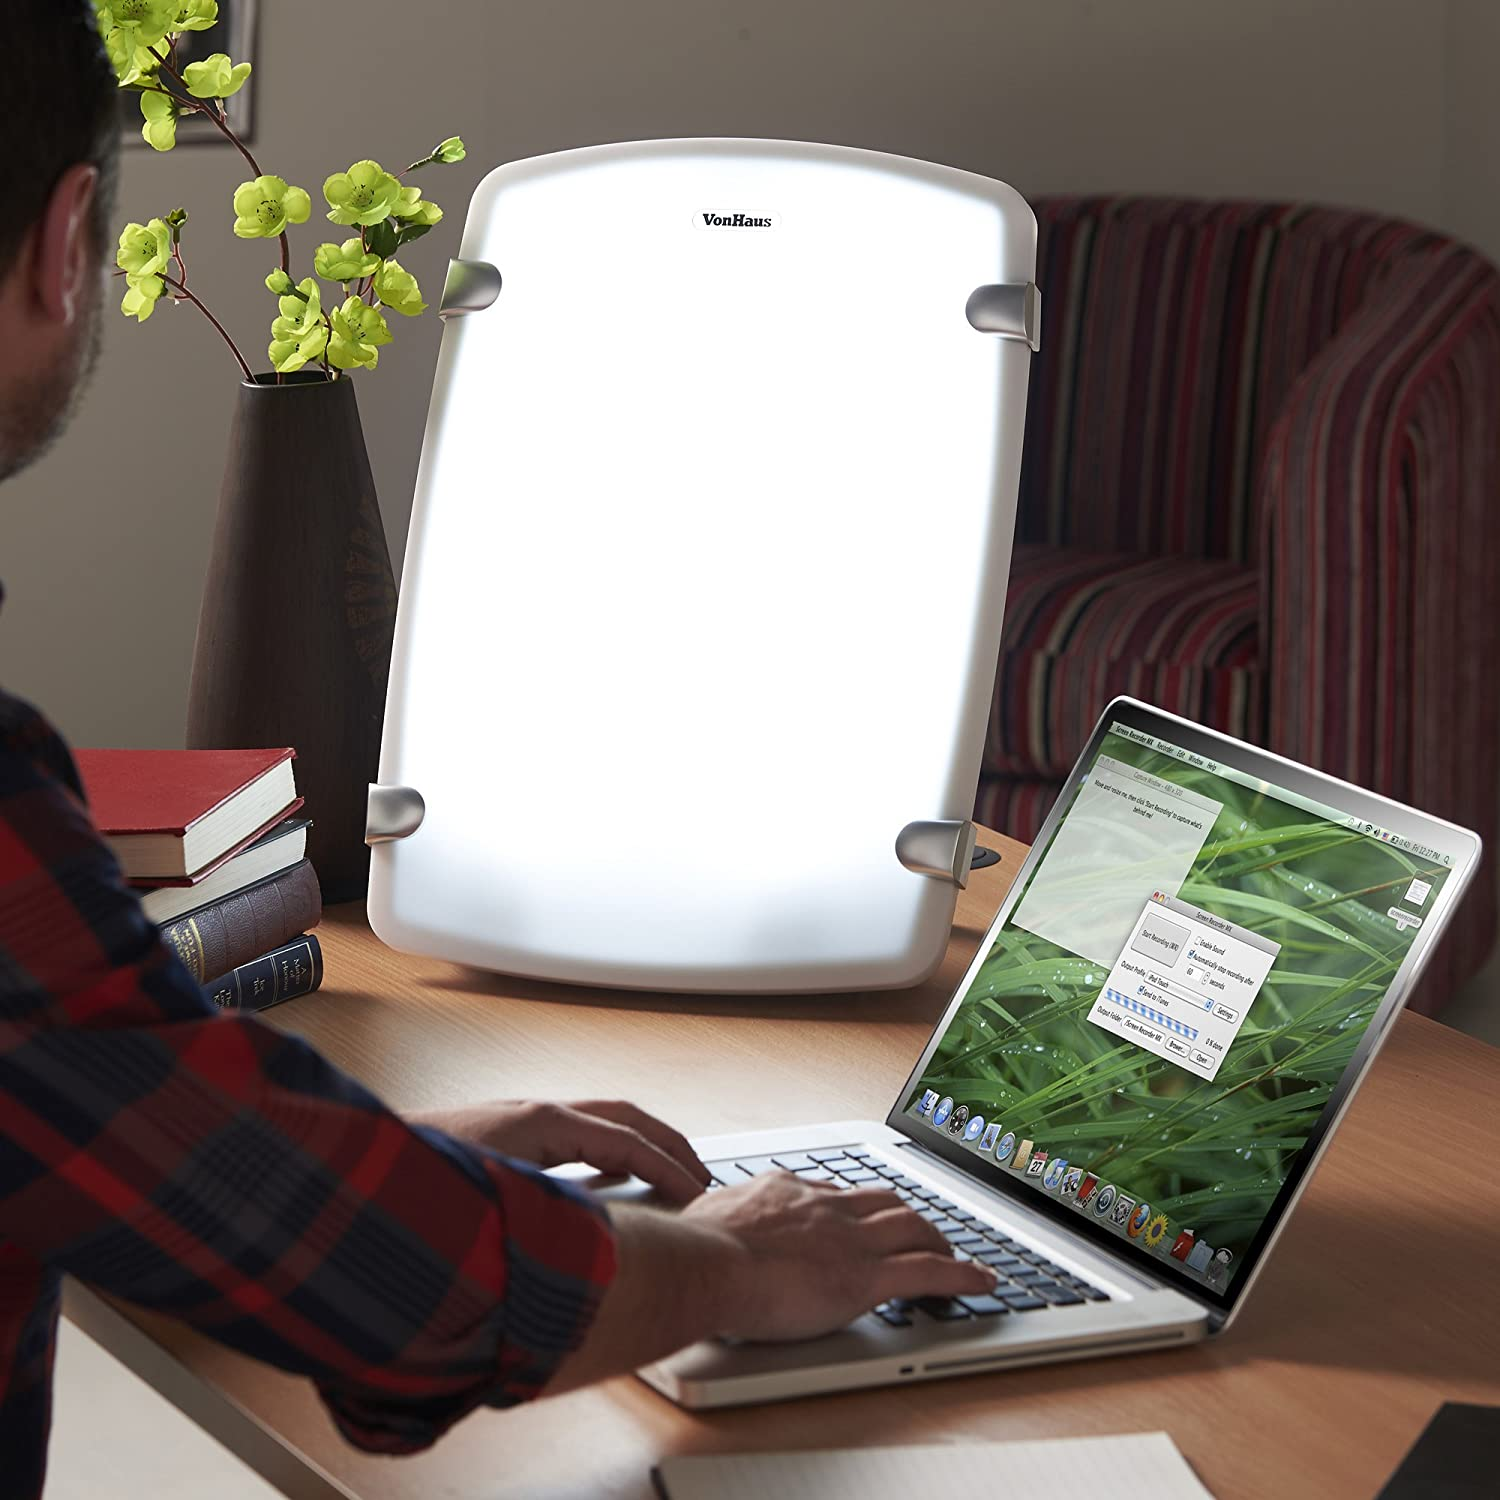 Vonhaus Sad Daylight Light Box 10,000 Lux Lamp  Medically Certified To  Treat Seasonal Affective Disorder  With Timer: Amazon: Health &  Personal Care